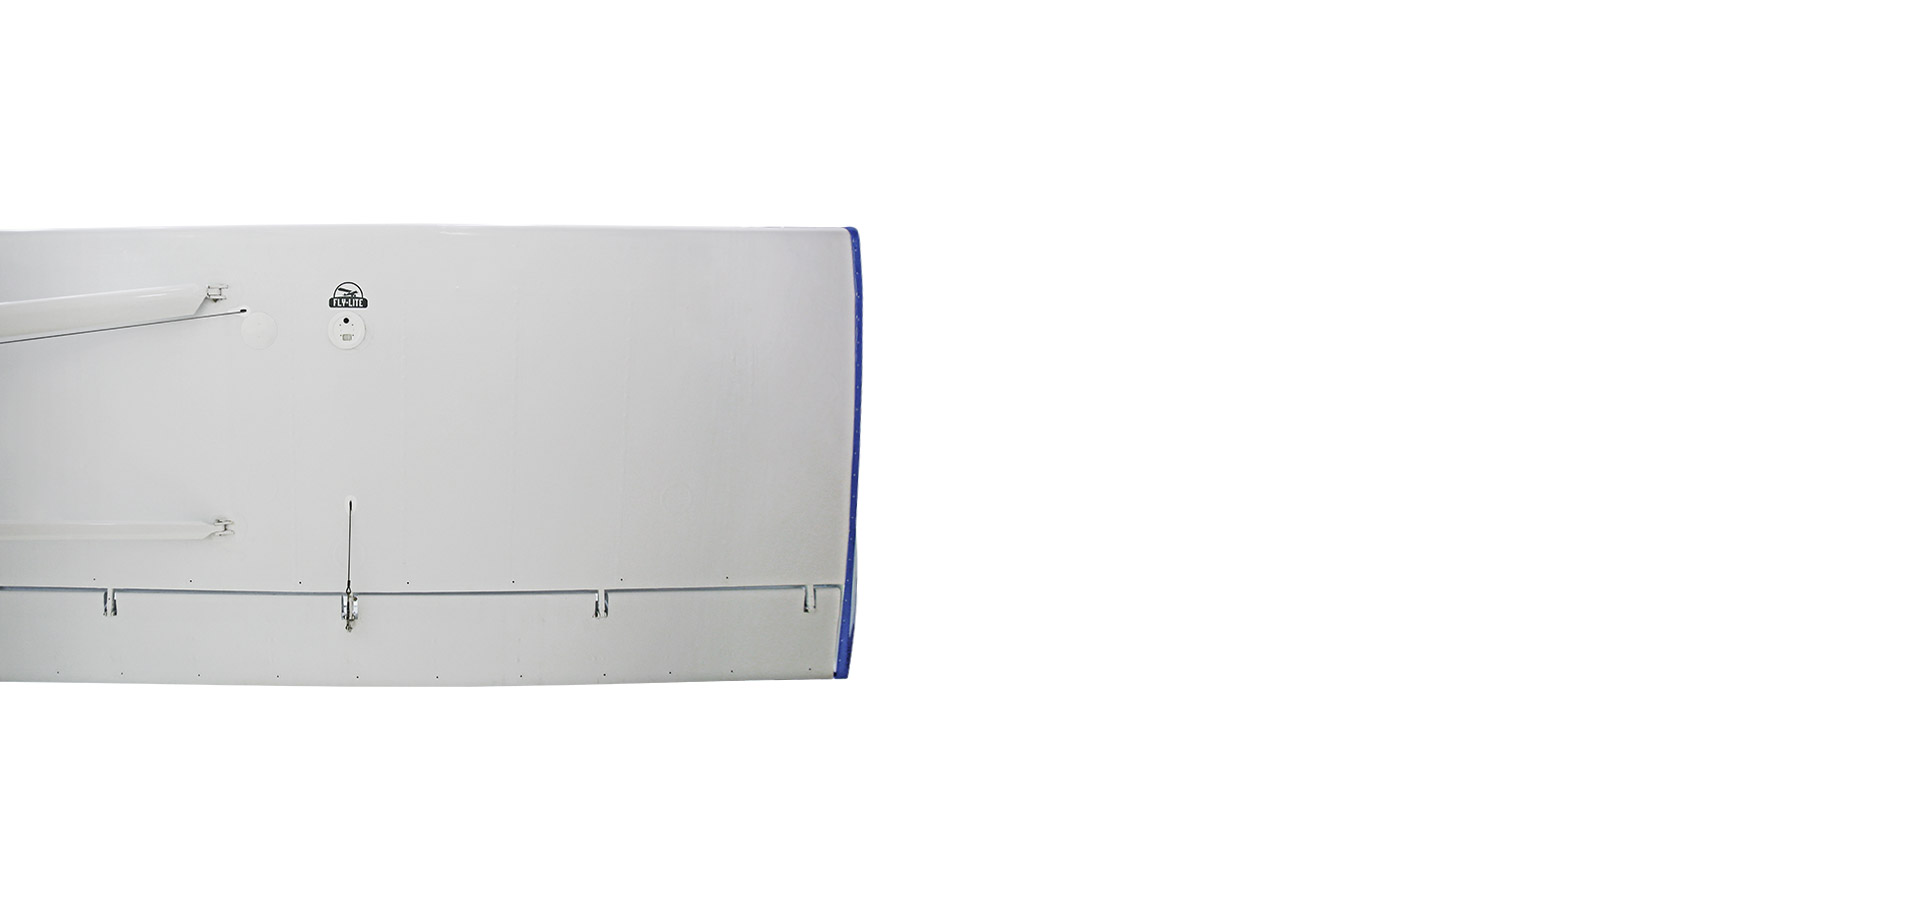 Home » Fly-Lite » Fabric Wing & Cessna Inspection Panel